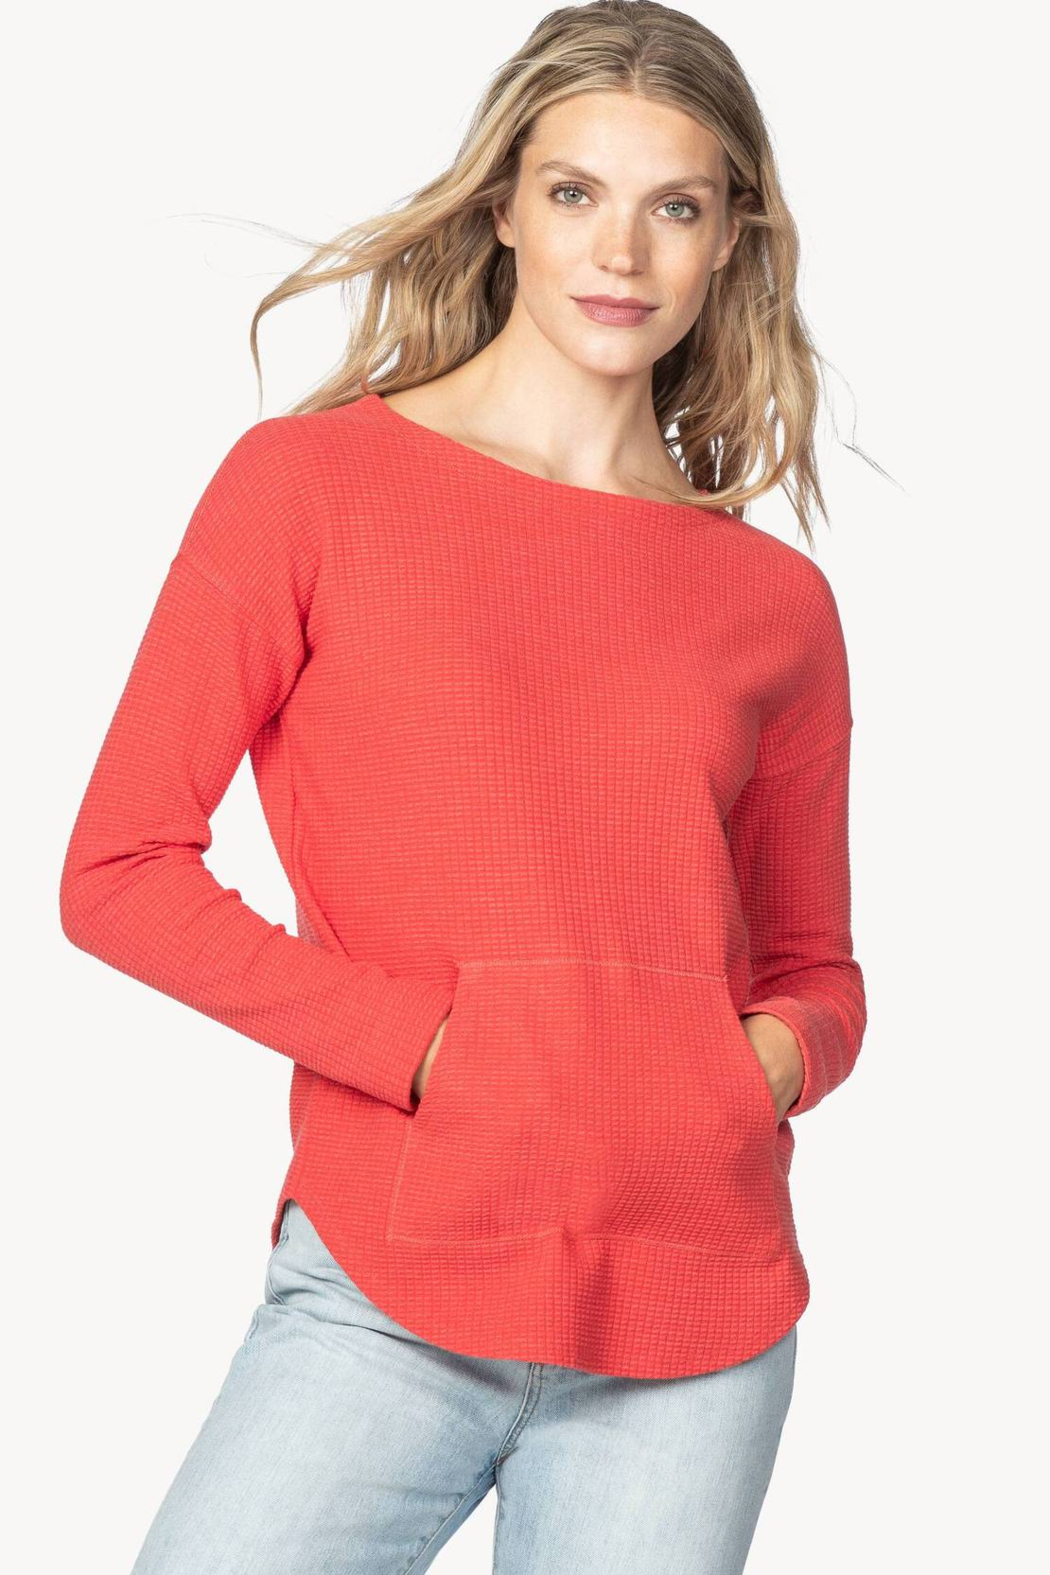 Lilla P PA1092 - Long Sleeved Boatneck - Main Image